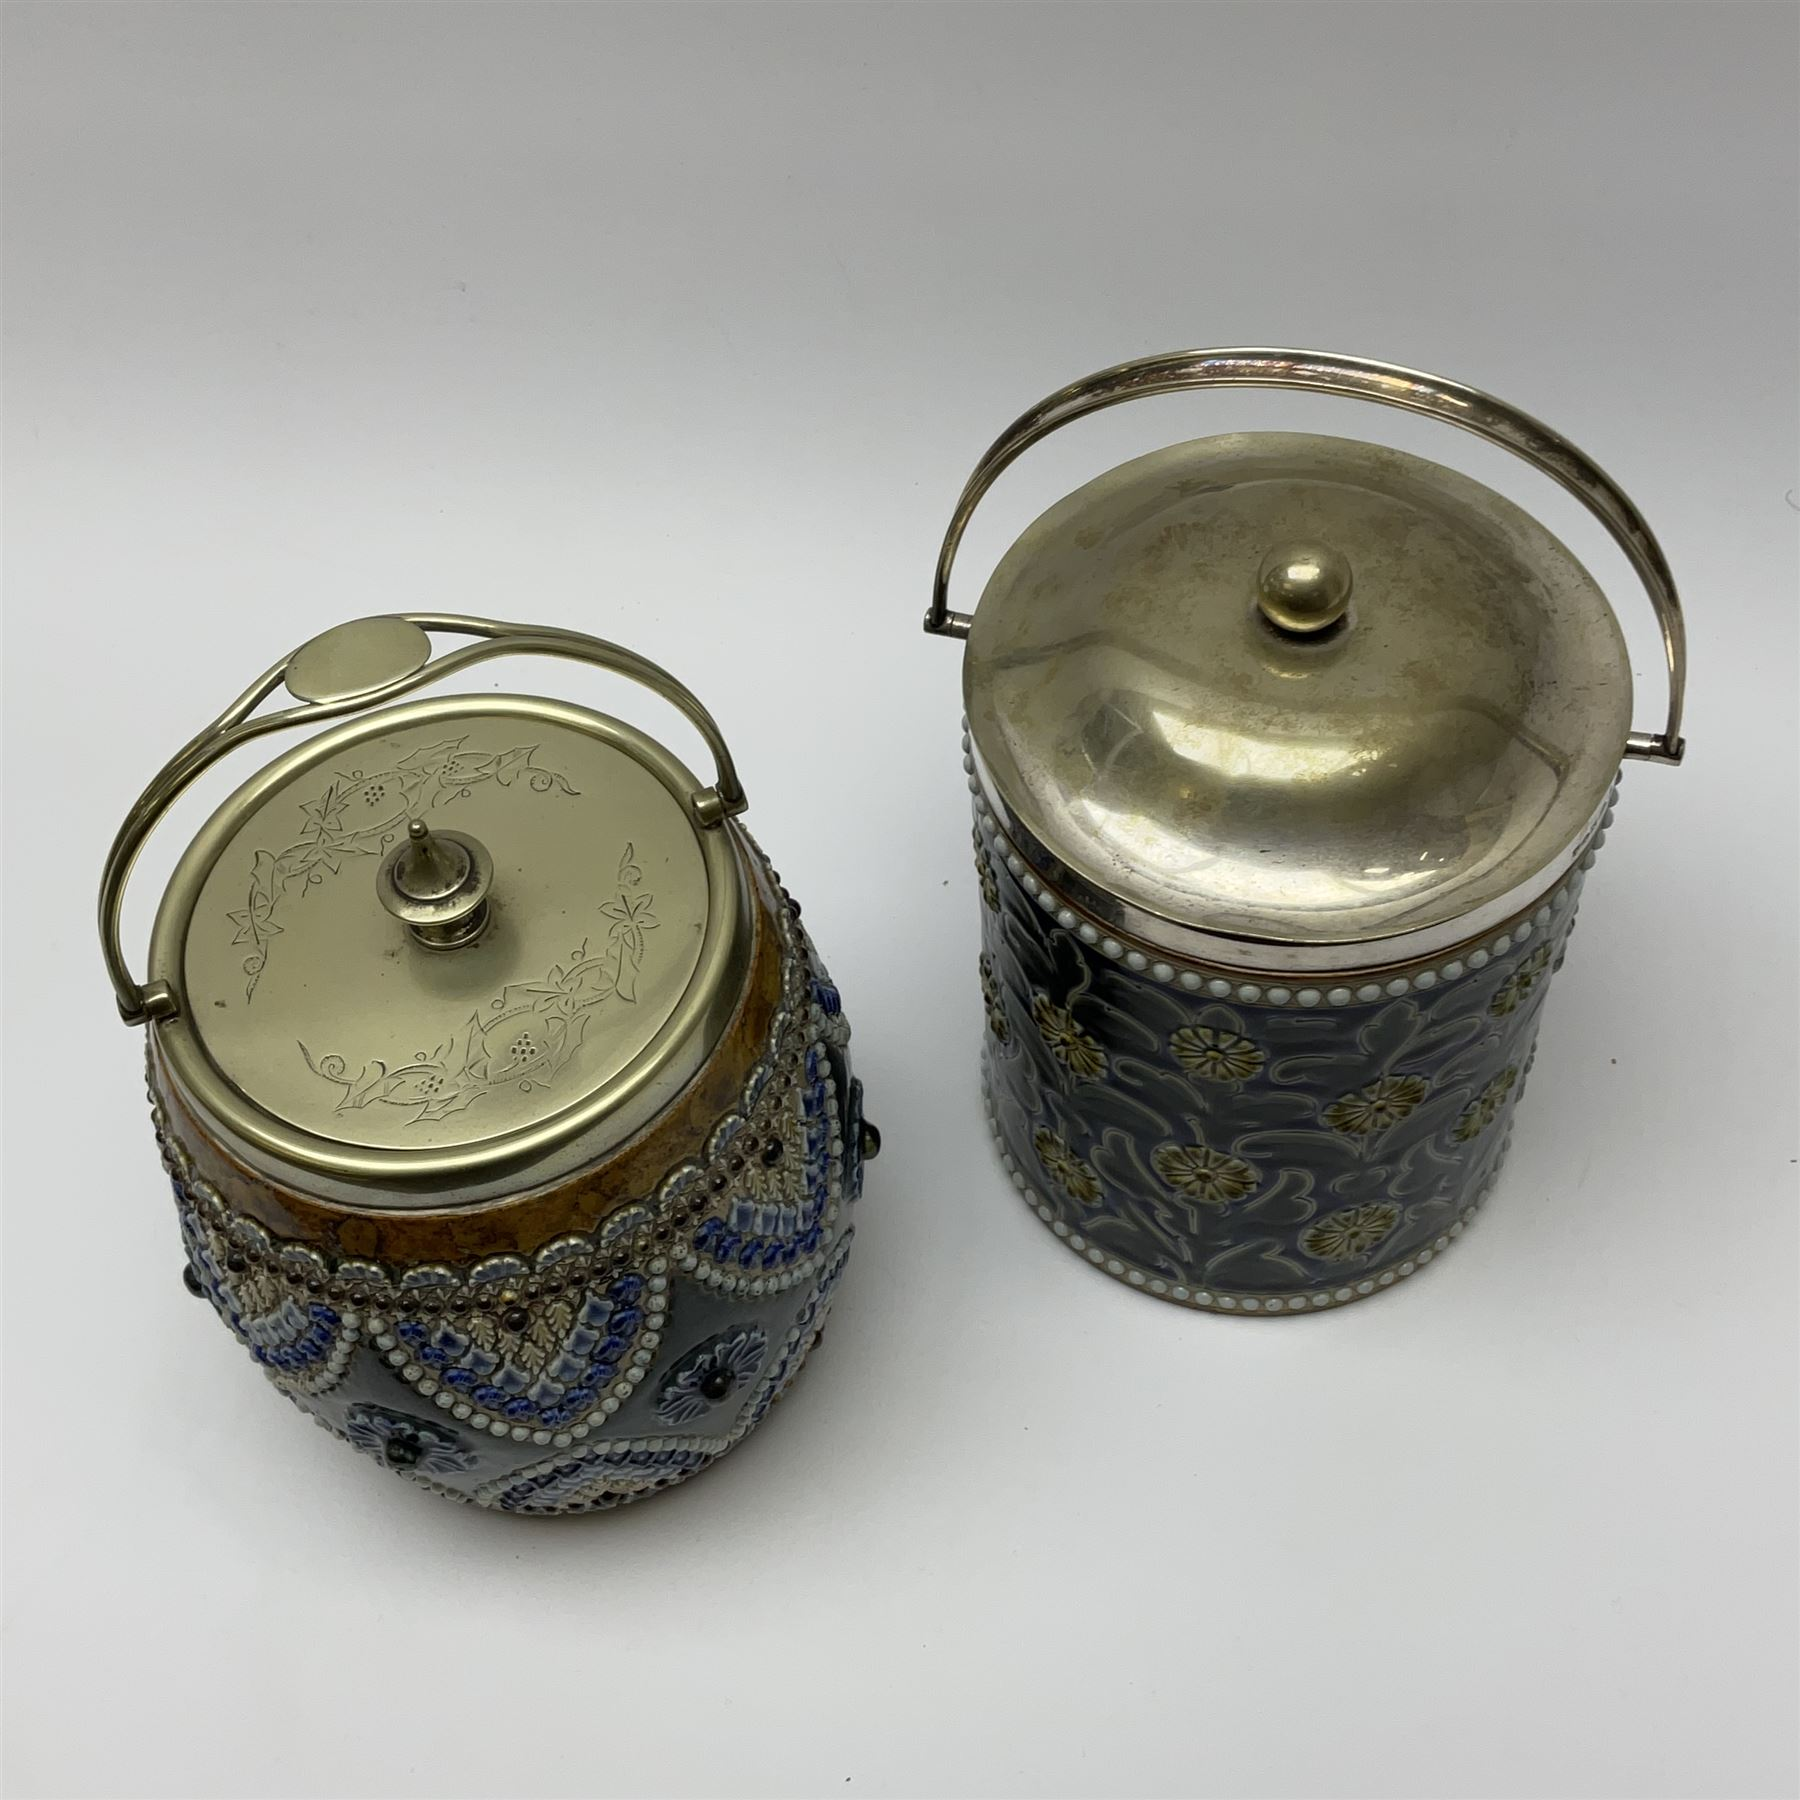 A 19th century Doulton Lambeth stoneware tobacco jar with a silver plate lid - Image 2 of 5